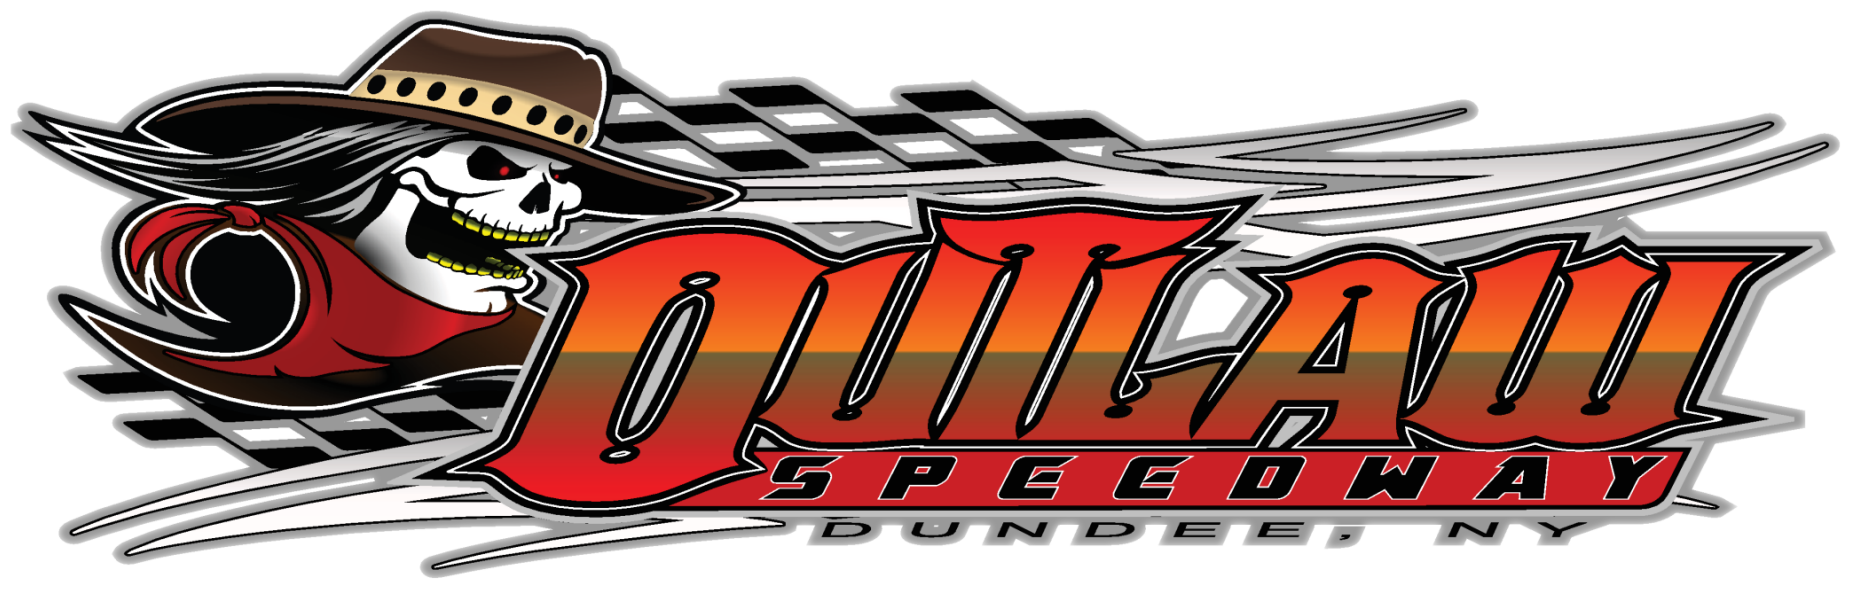 Outlaw Speedway - Dundee, NY